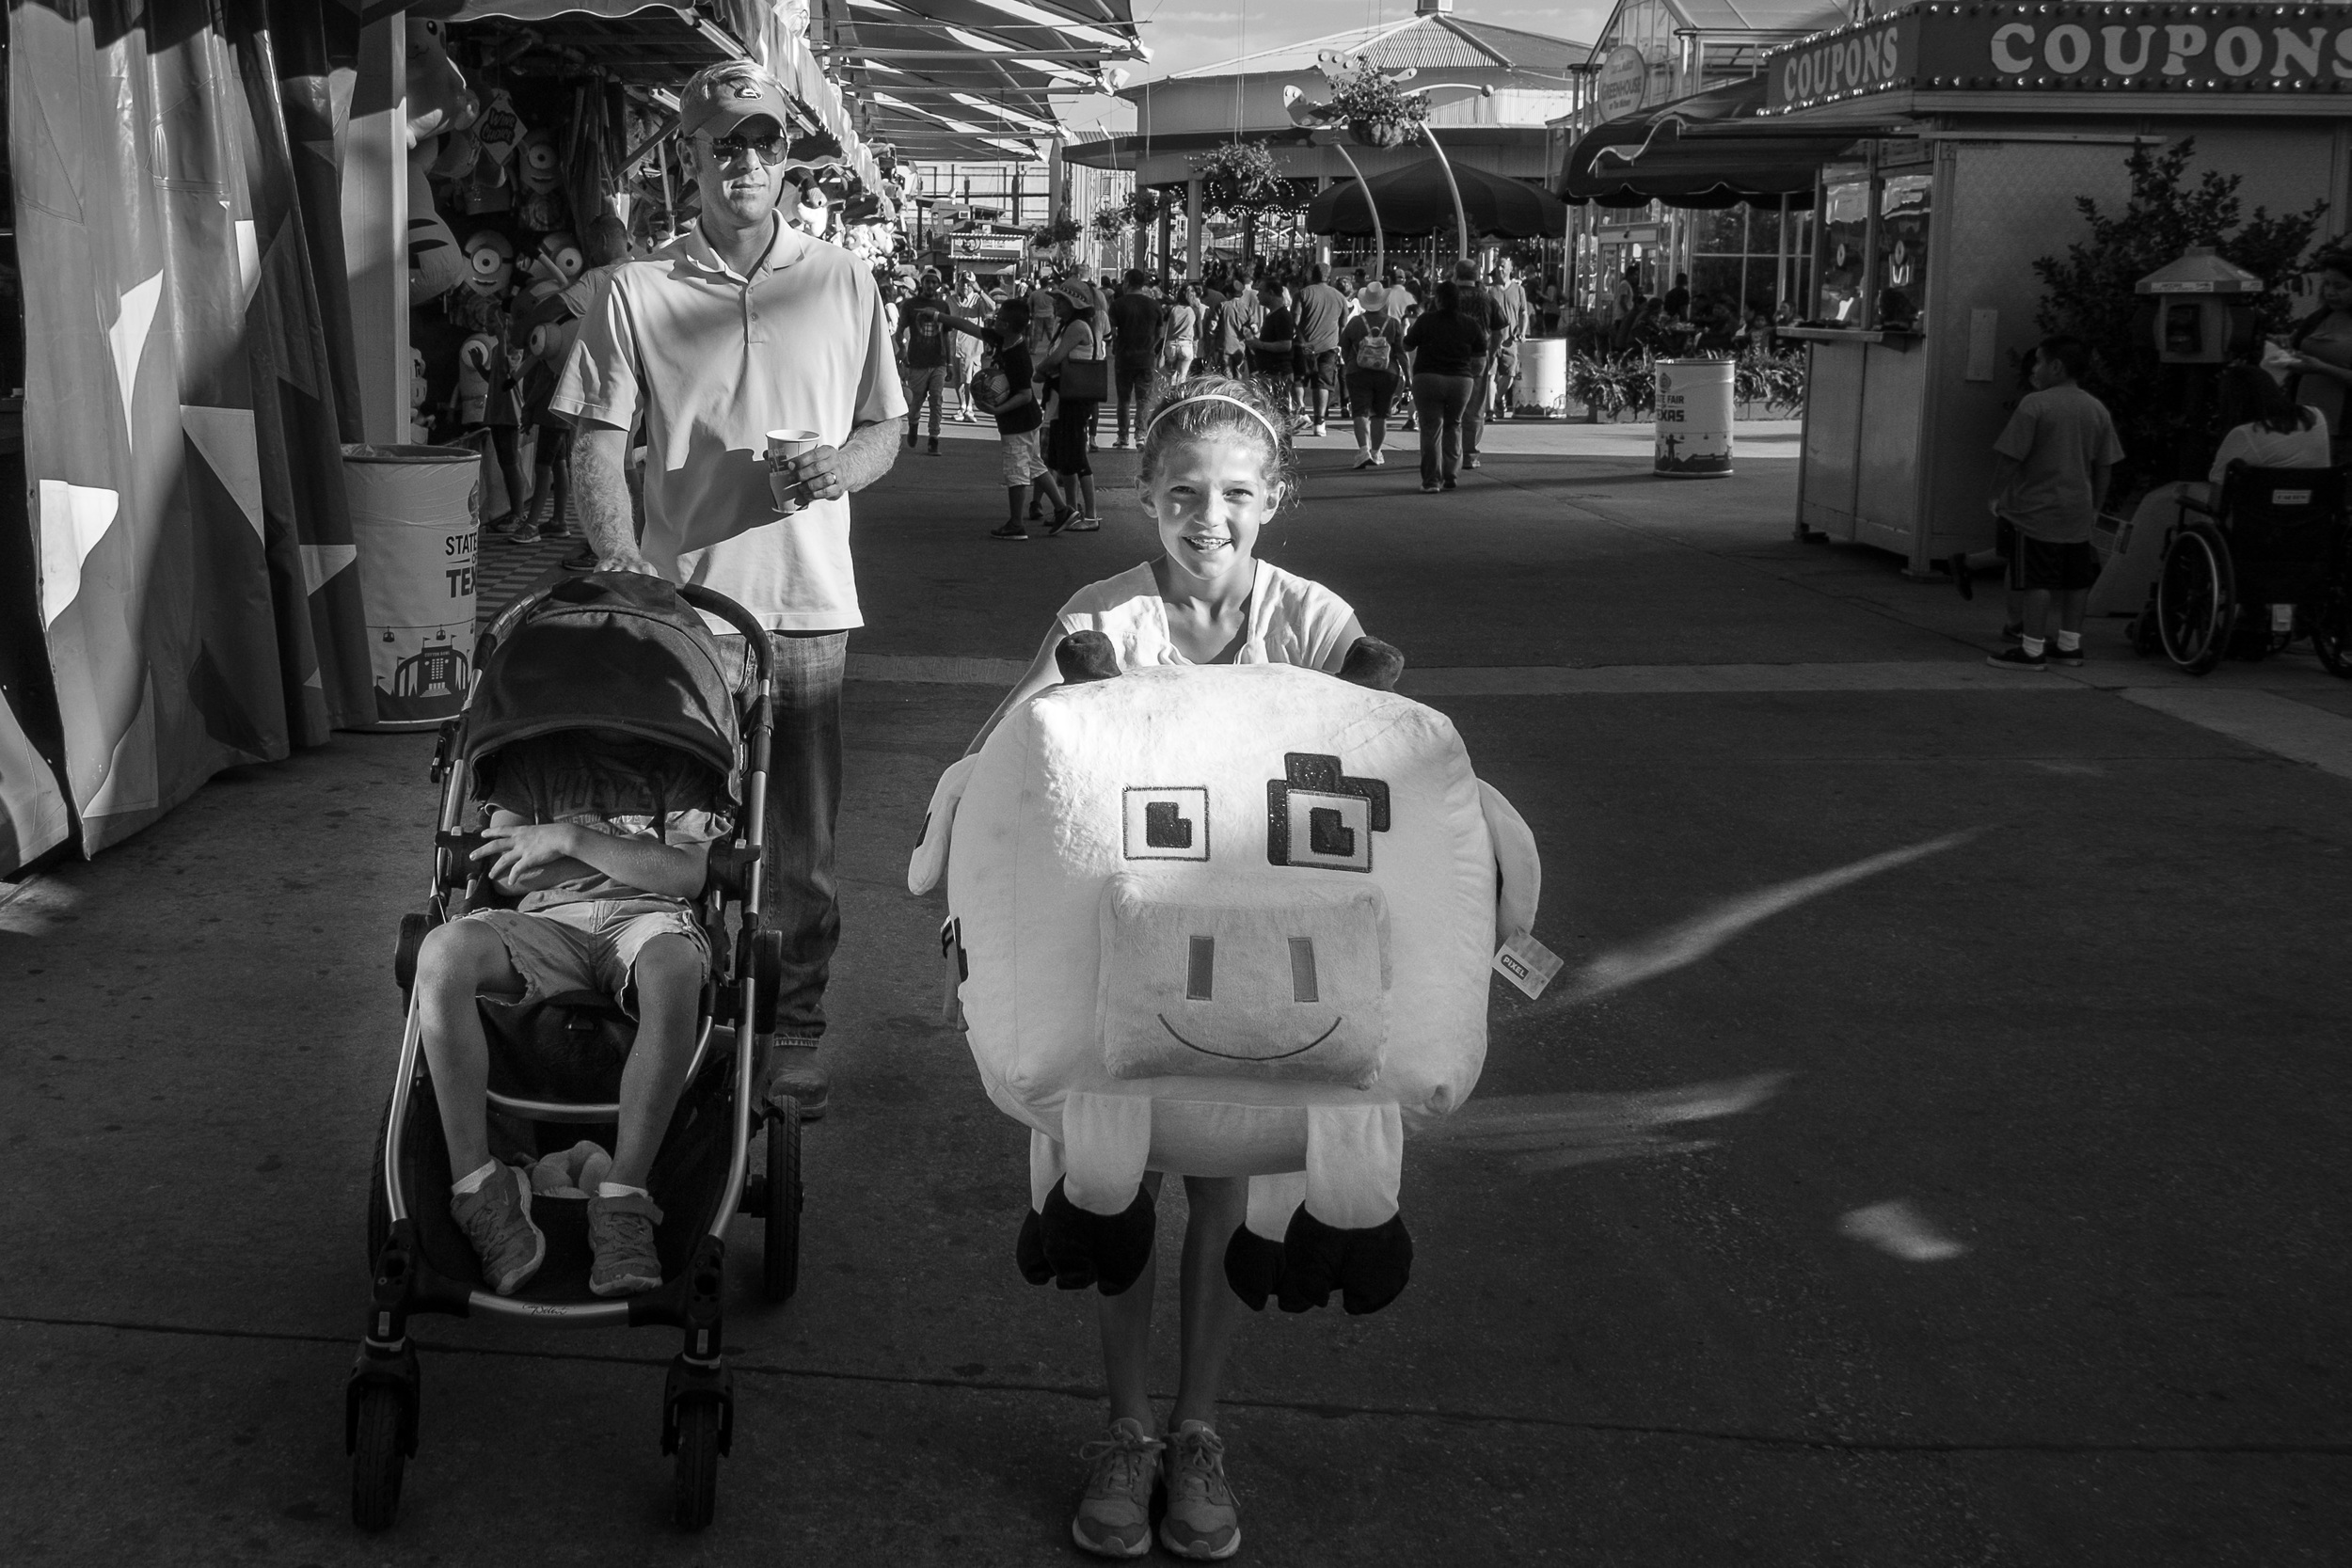 Ella won this massive Minecraft cow. Two things about this photo make me giggle.  1. Knowing how Ella is going to have to haul that thing around the fair for two more hours.  2. Her brother's temper tantrum while sitting in the stroller he's clearly outgrown. (Where's Henry?)